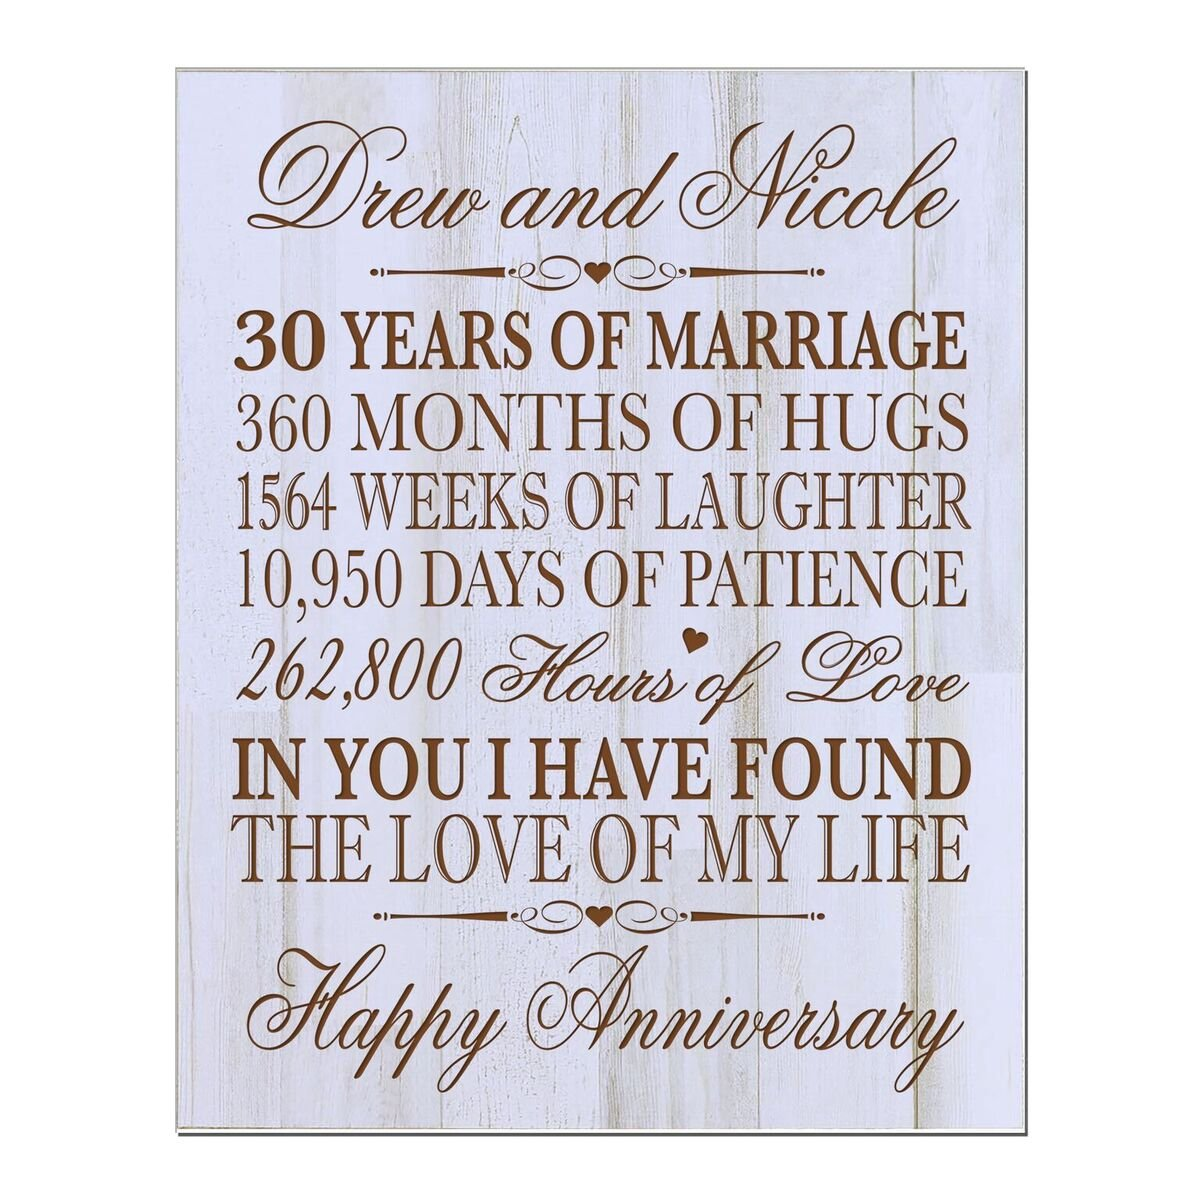 LifeSong Milestones Personalized 30th Wedding for Couple, Custom Made 12 Inches Wx 16 Inches H (Distressed Wood)